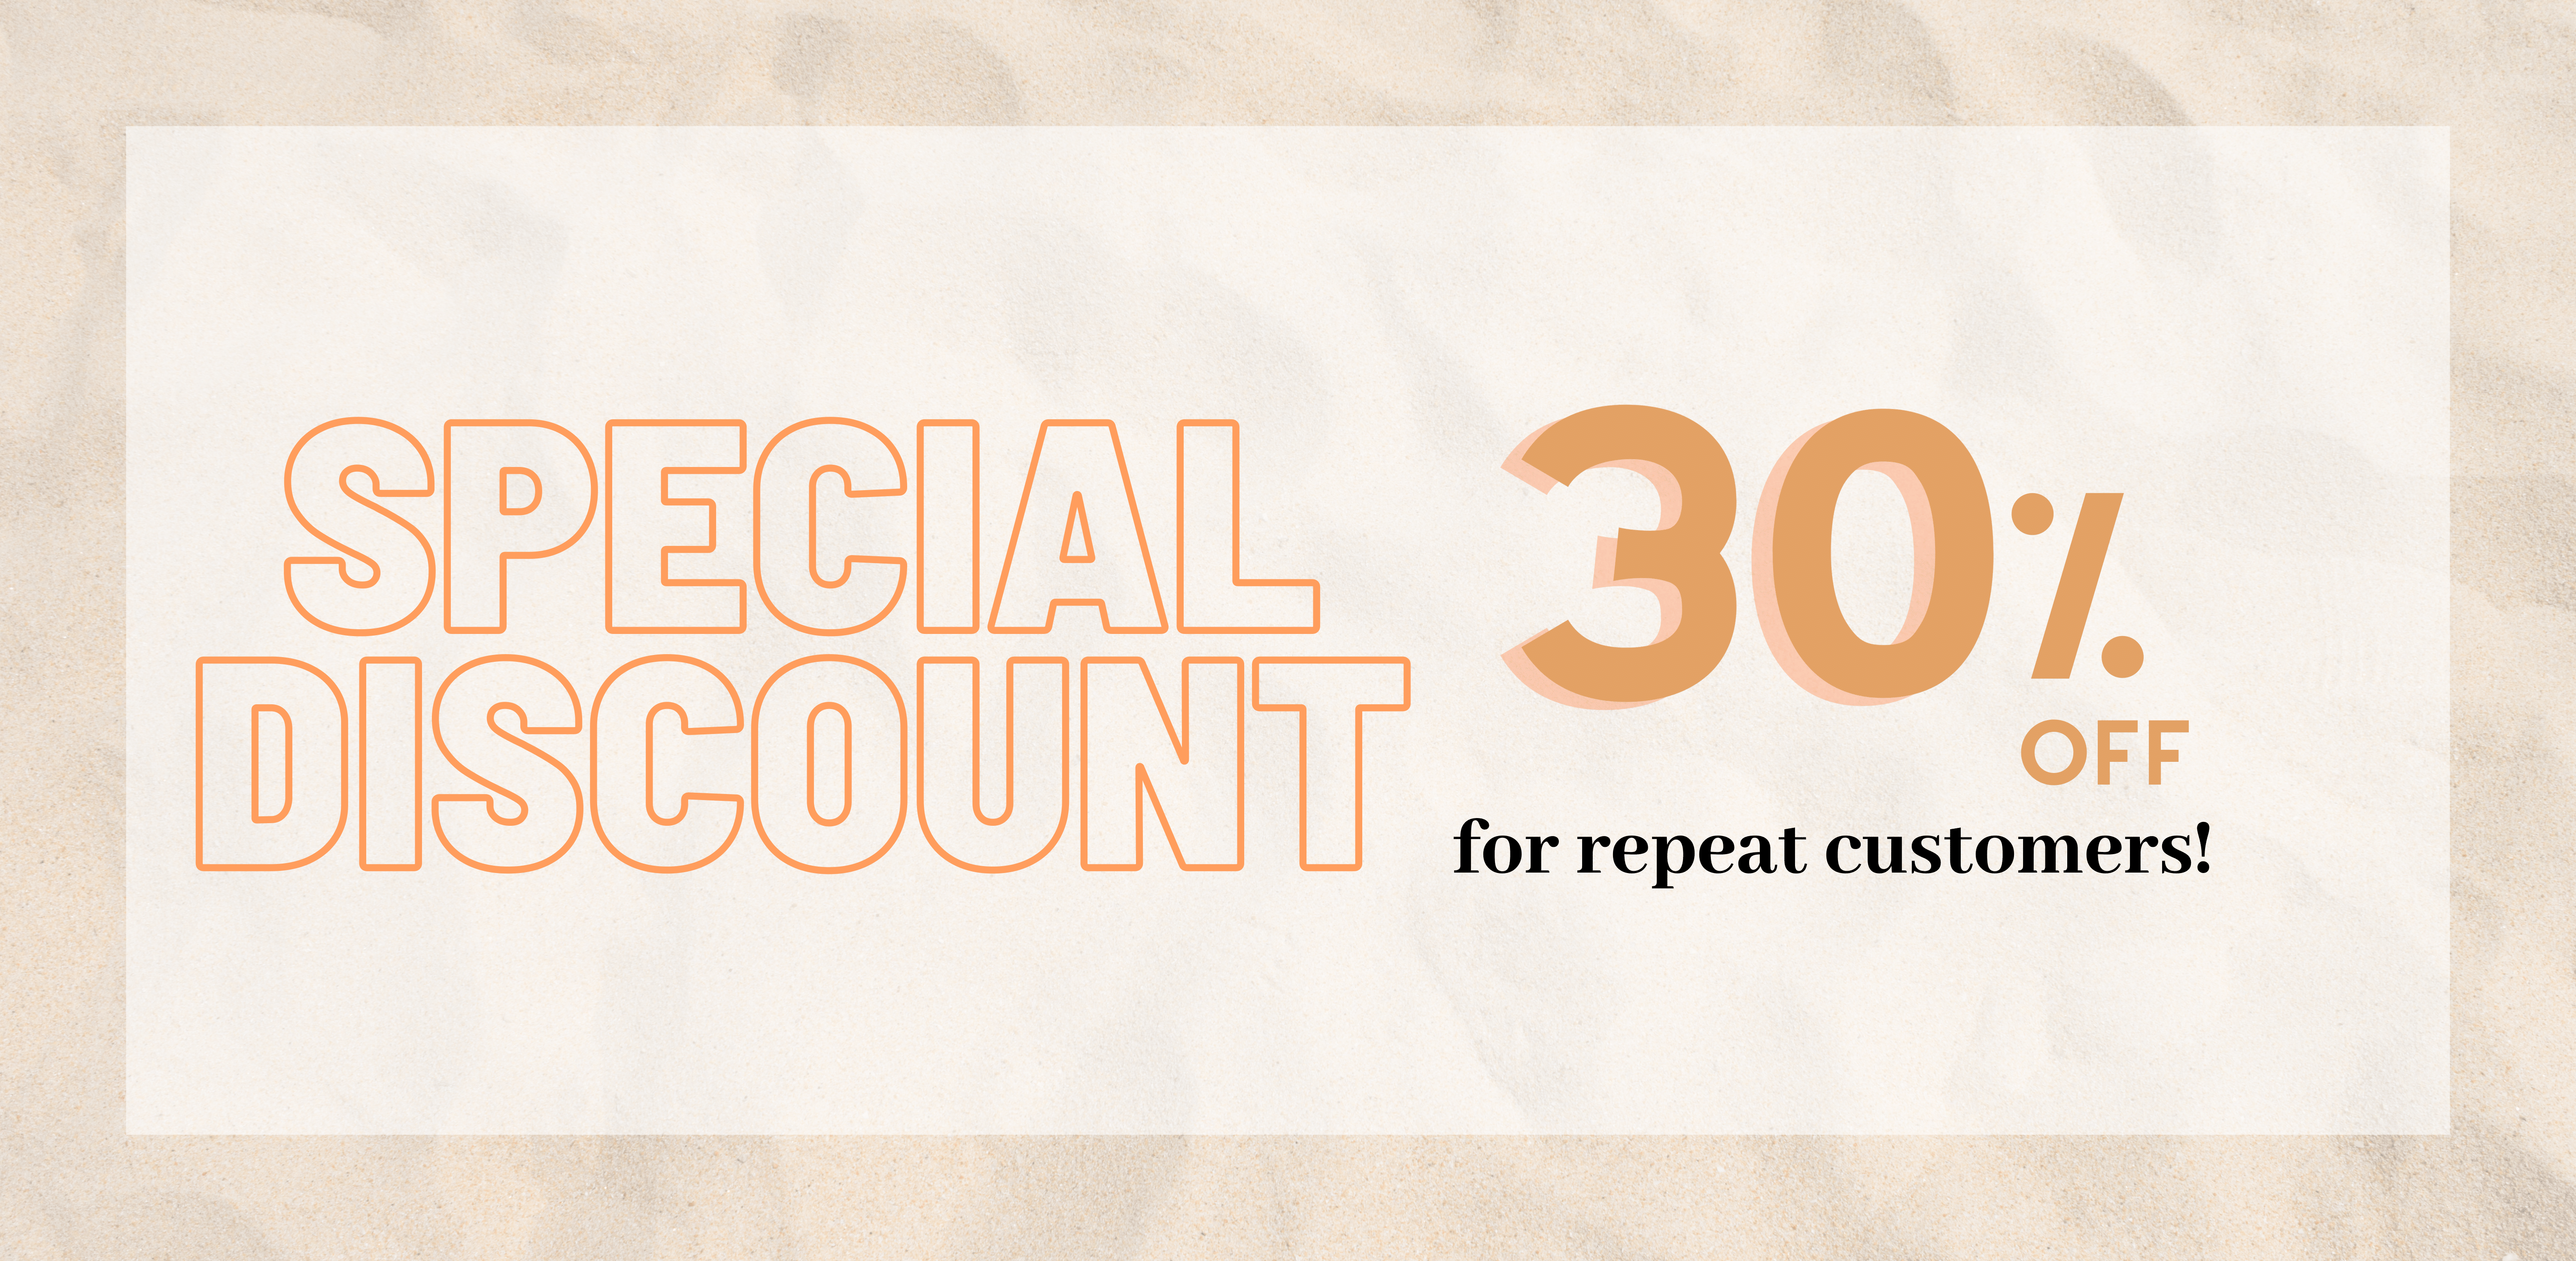 Special Discount 30% OFF